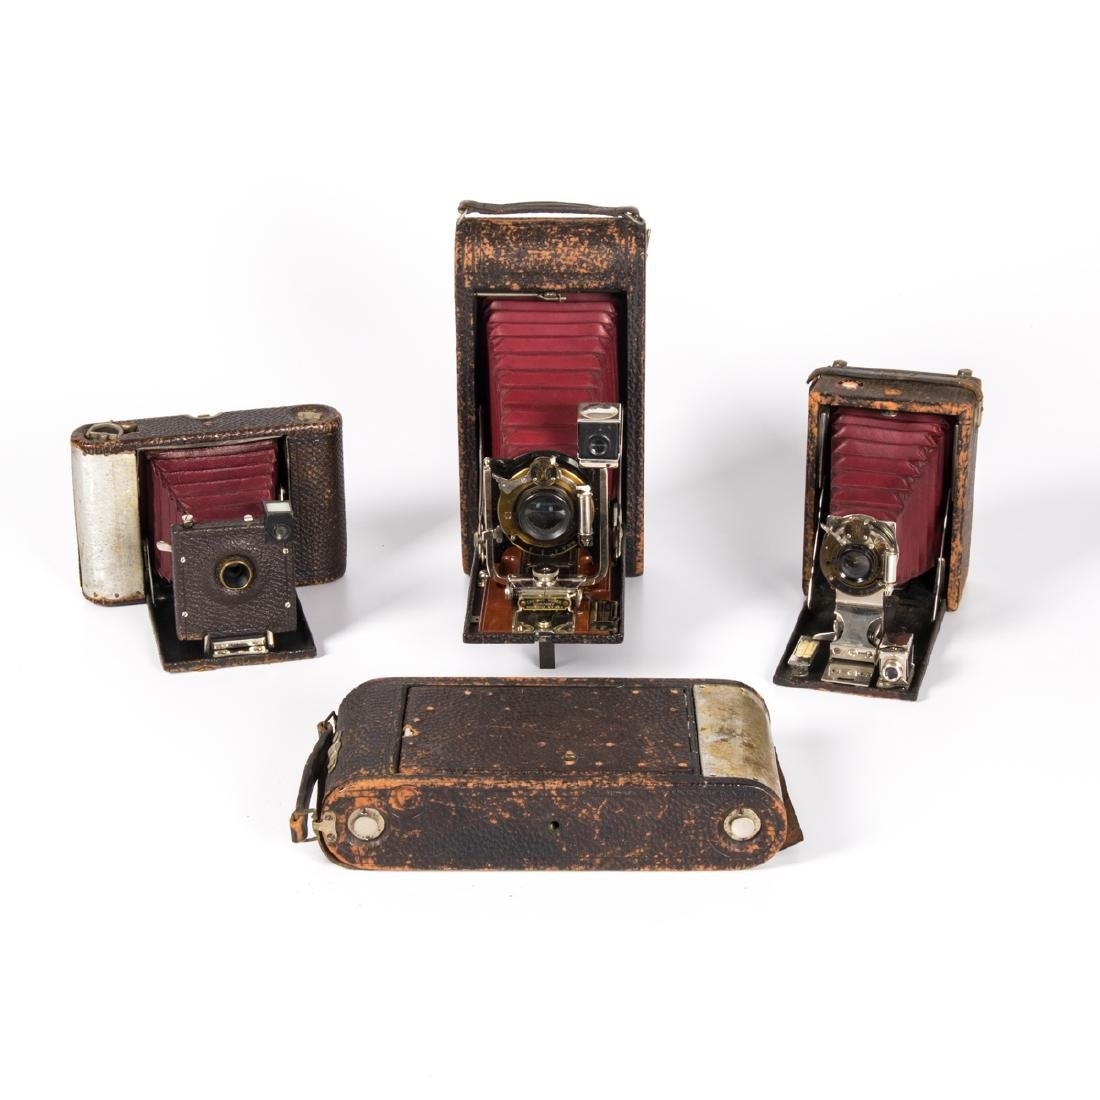 A Group of Four Vintage Cameras by Various Makers, 20th